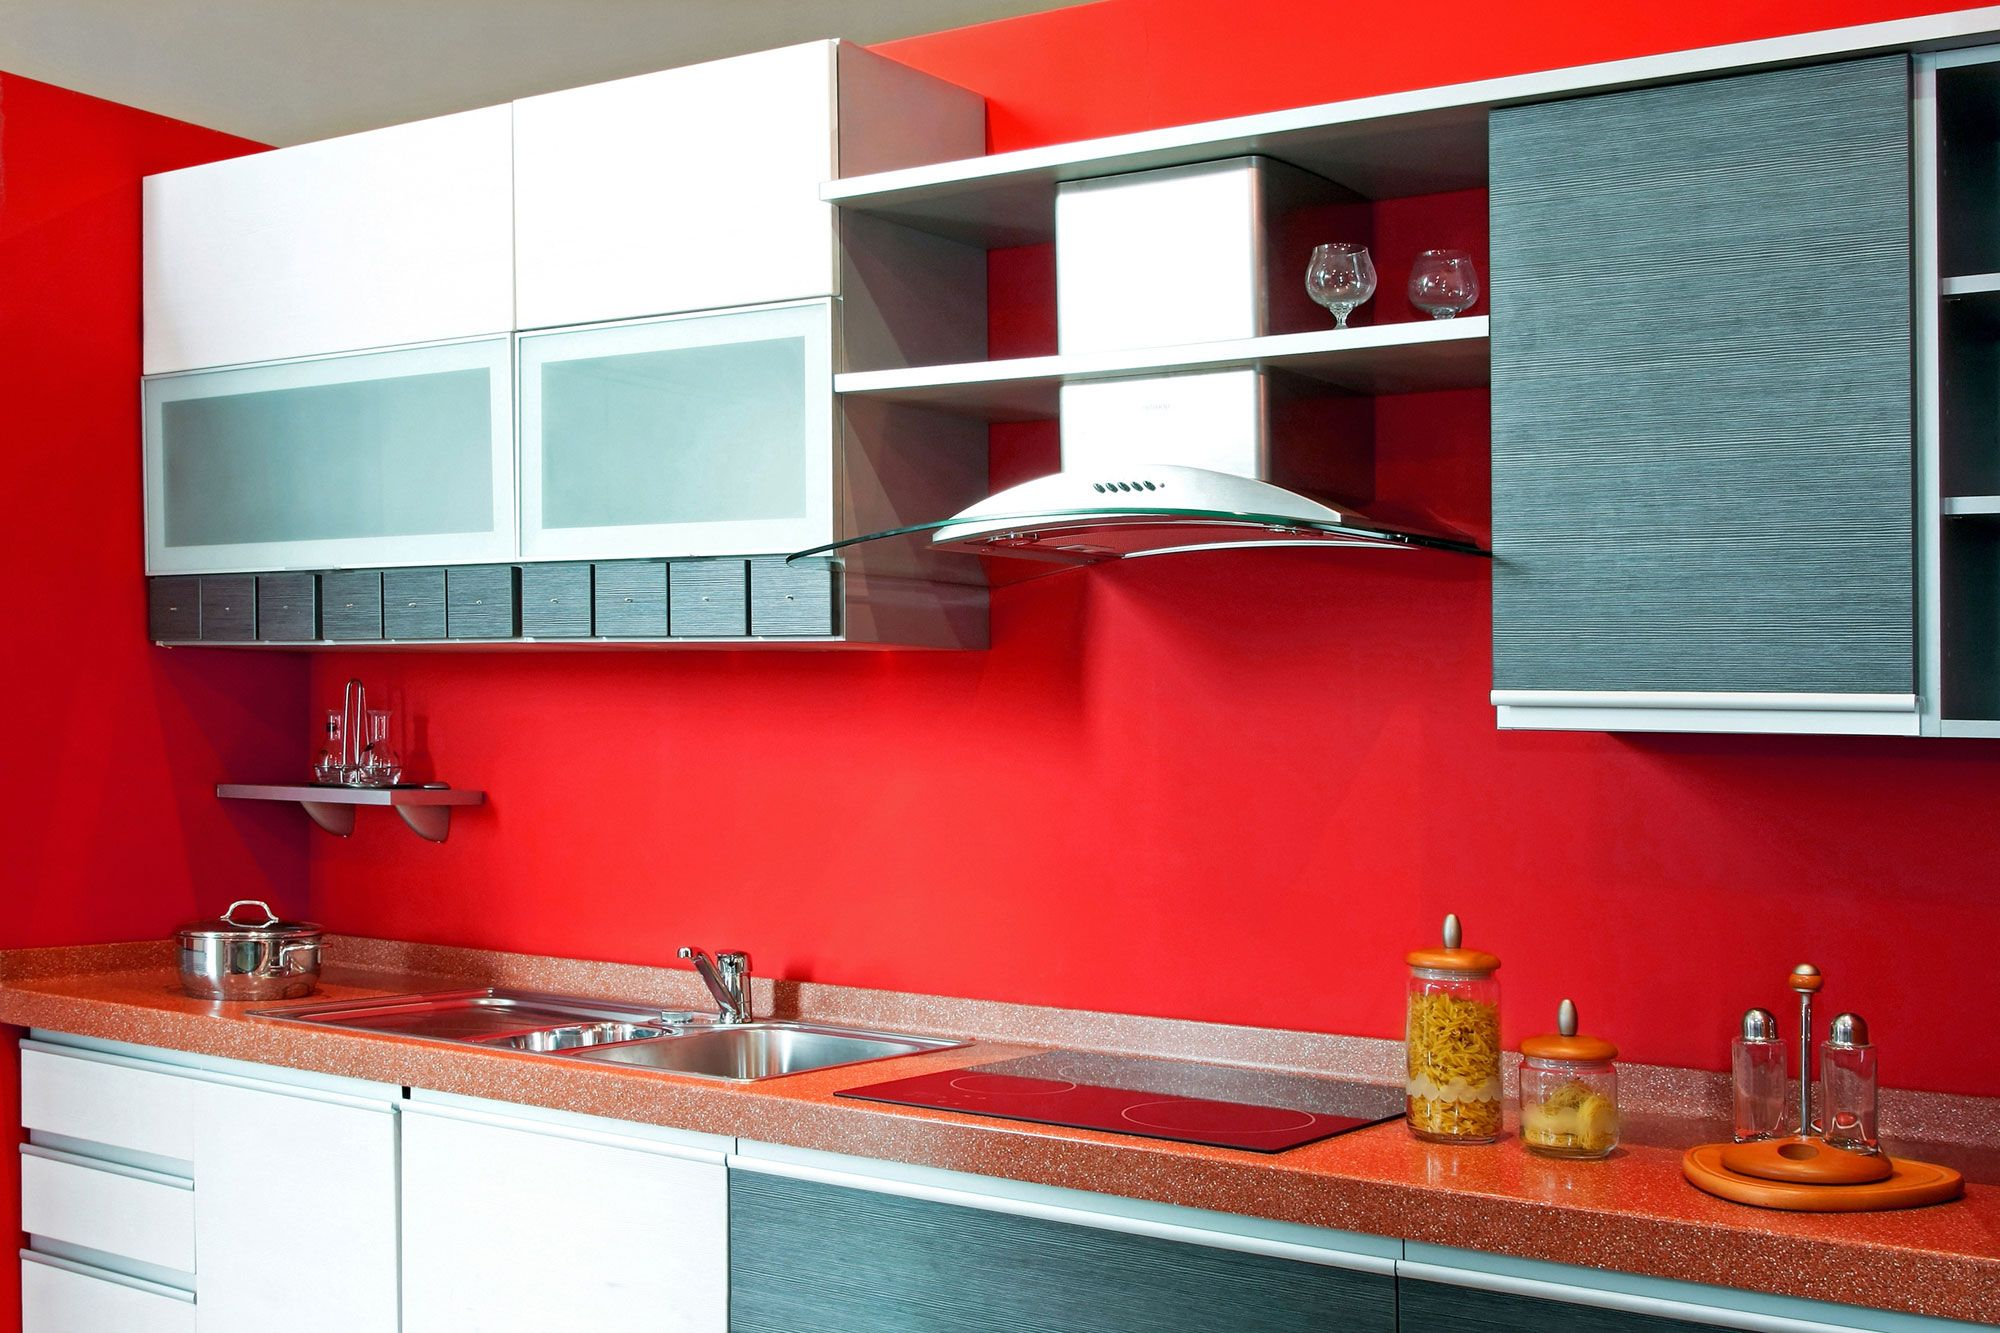 Decoraci n de cocinas en color rojo hogarmania for Decoracion para pared cocina